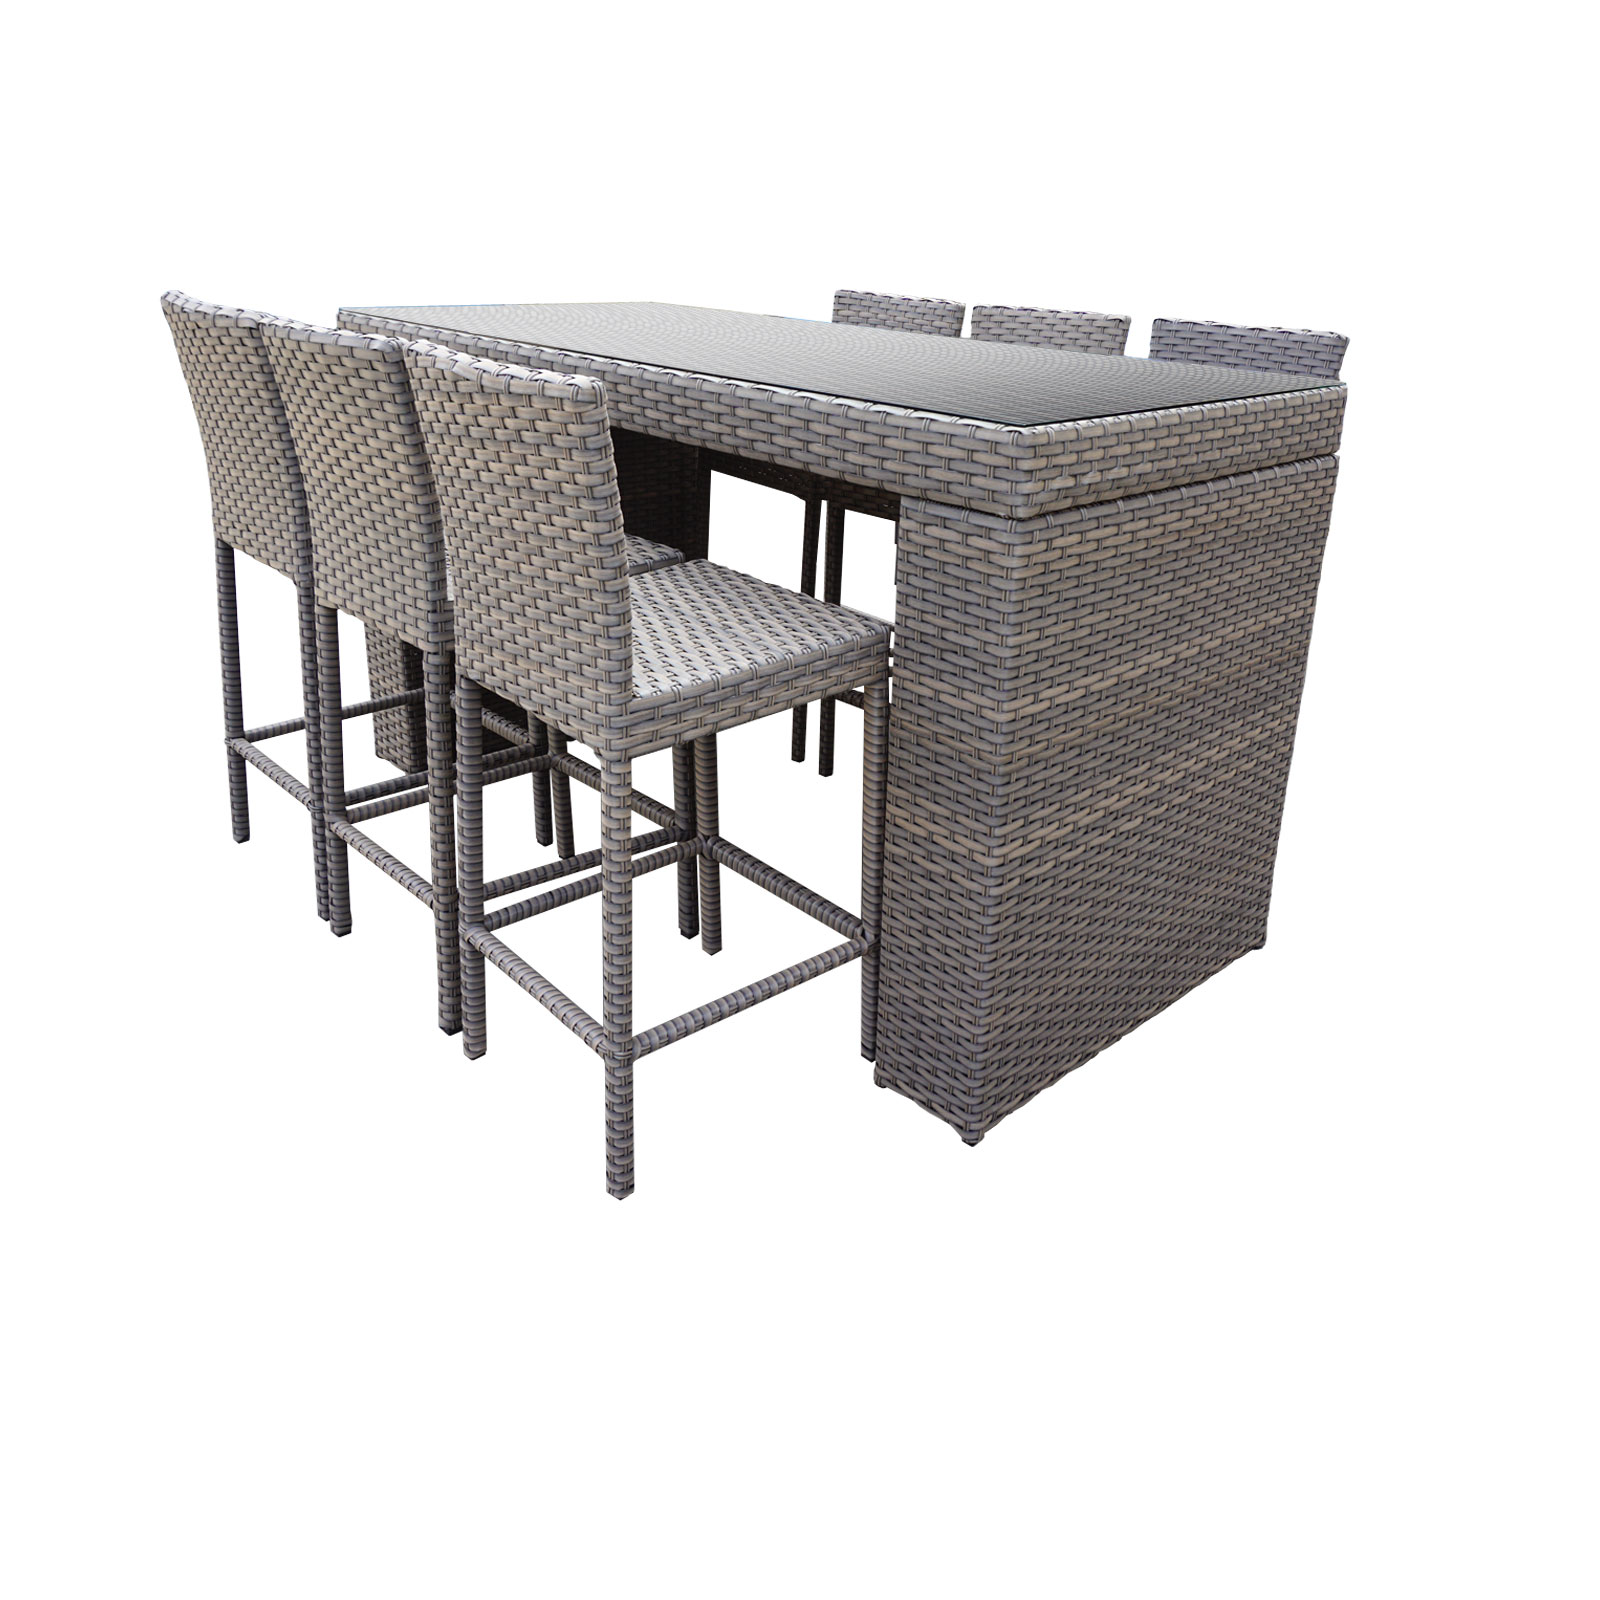 Pub Table Set With Bar Stools 7 Piece Outdoor Wicker Patio Furniture by TK Classics